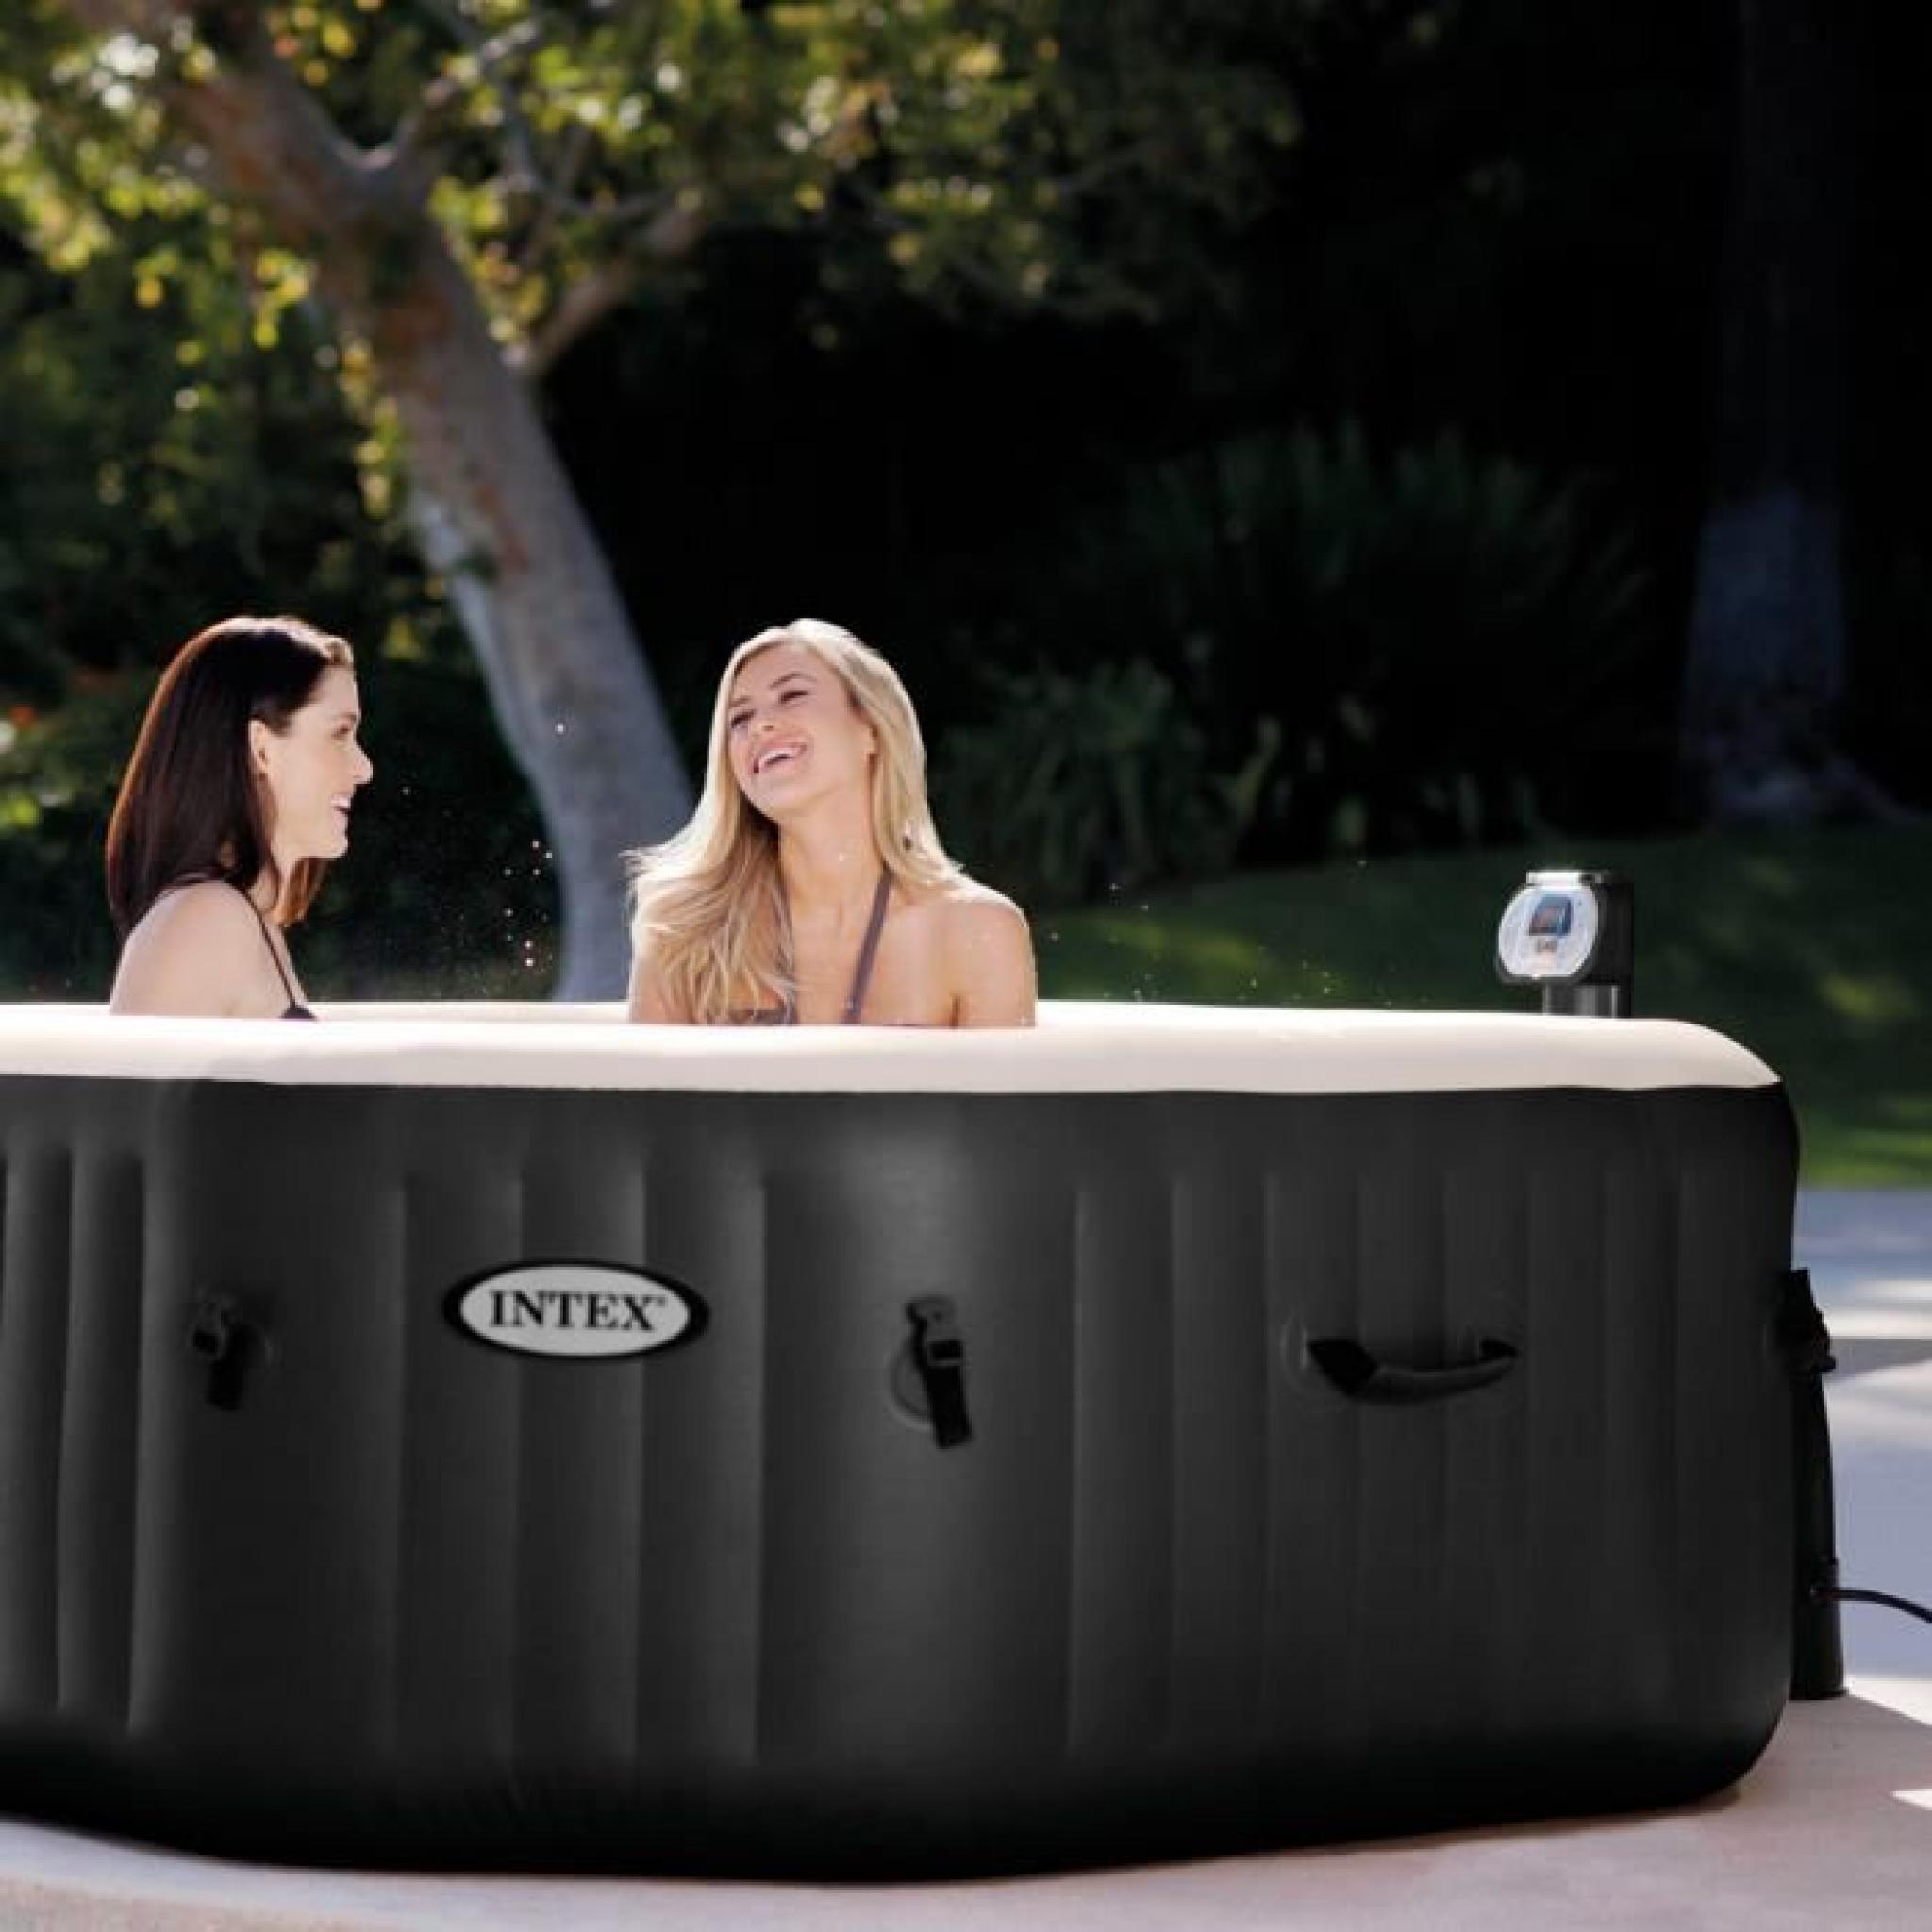 Acheter Jacuzzi Exterieur Intex 28454 Spa Gonflable Portable Exterieur Octagonal Jet Bubble Spa Generateur Chlore 201x71